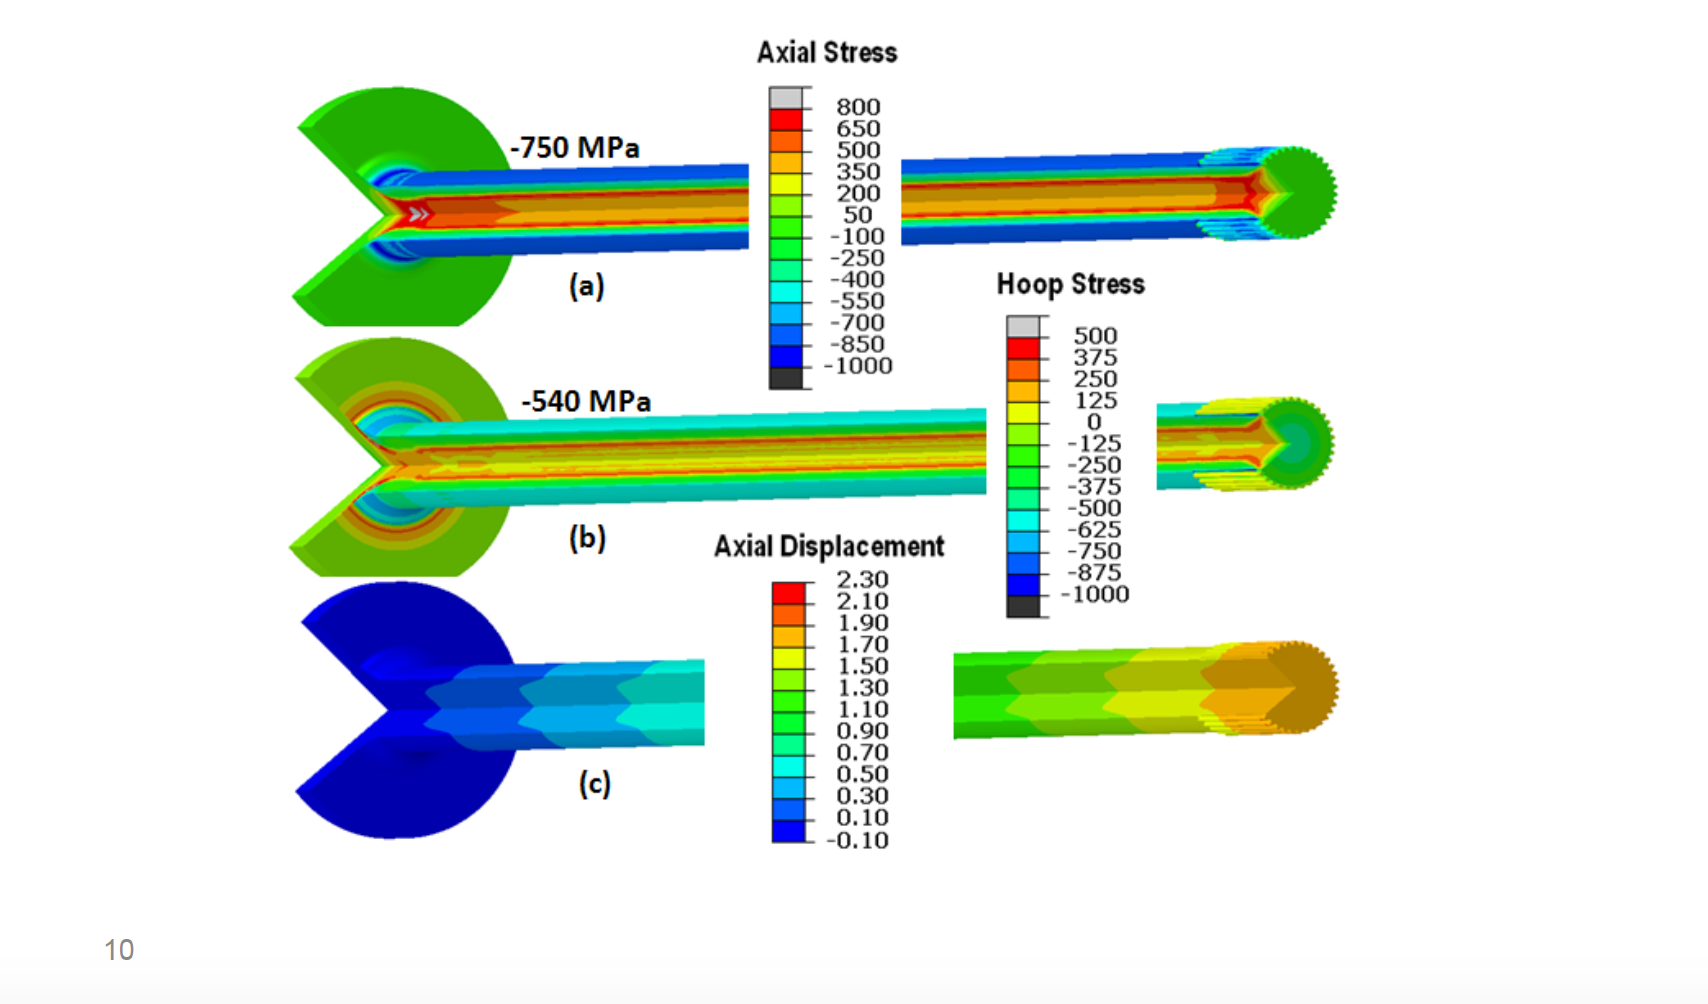 Fluxtrol | Integrated Computational Development of Induction Heat Treatment Process for Automotive Axle Shafts Figure 9 - Stresses and Dimensional Movement after Hardening